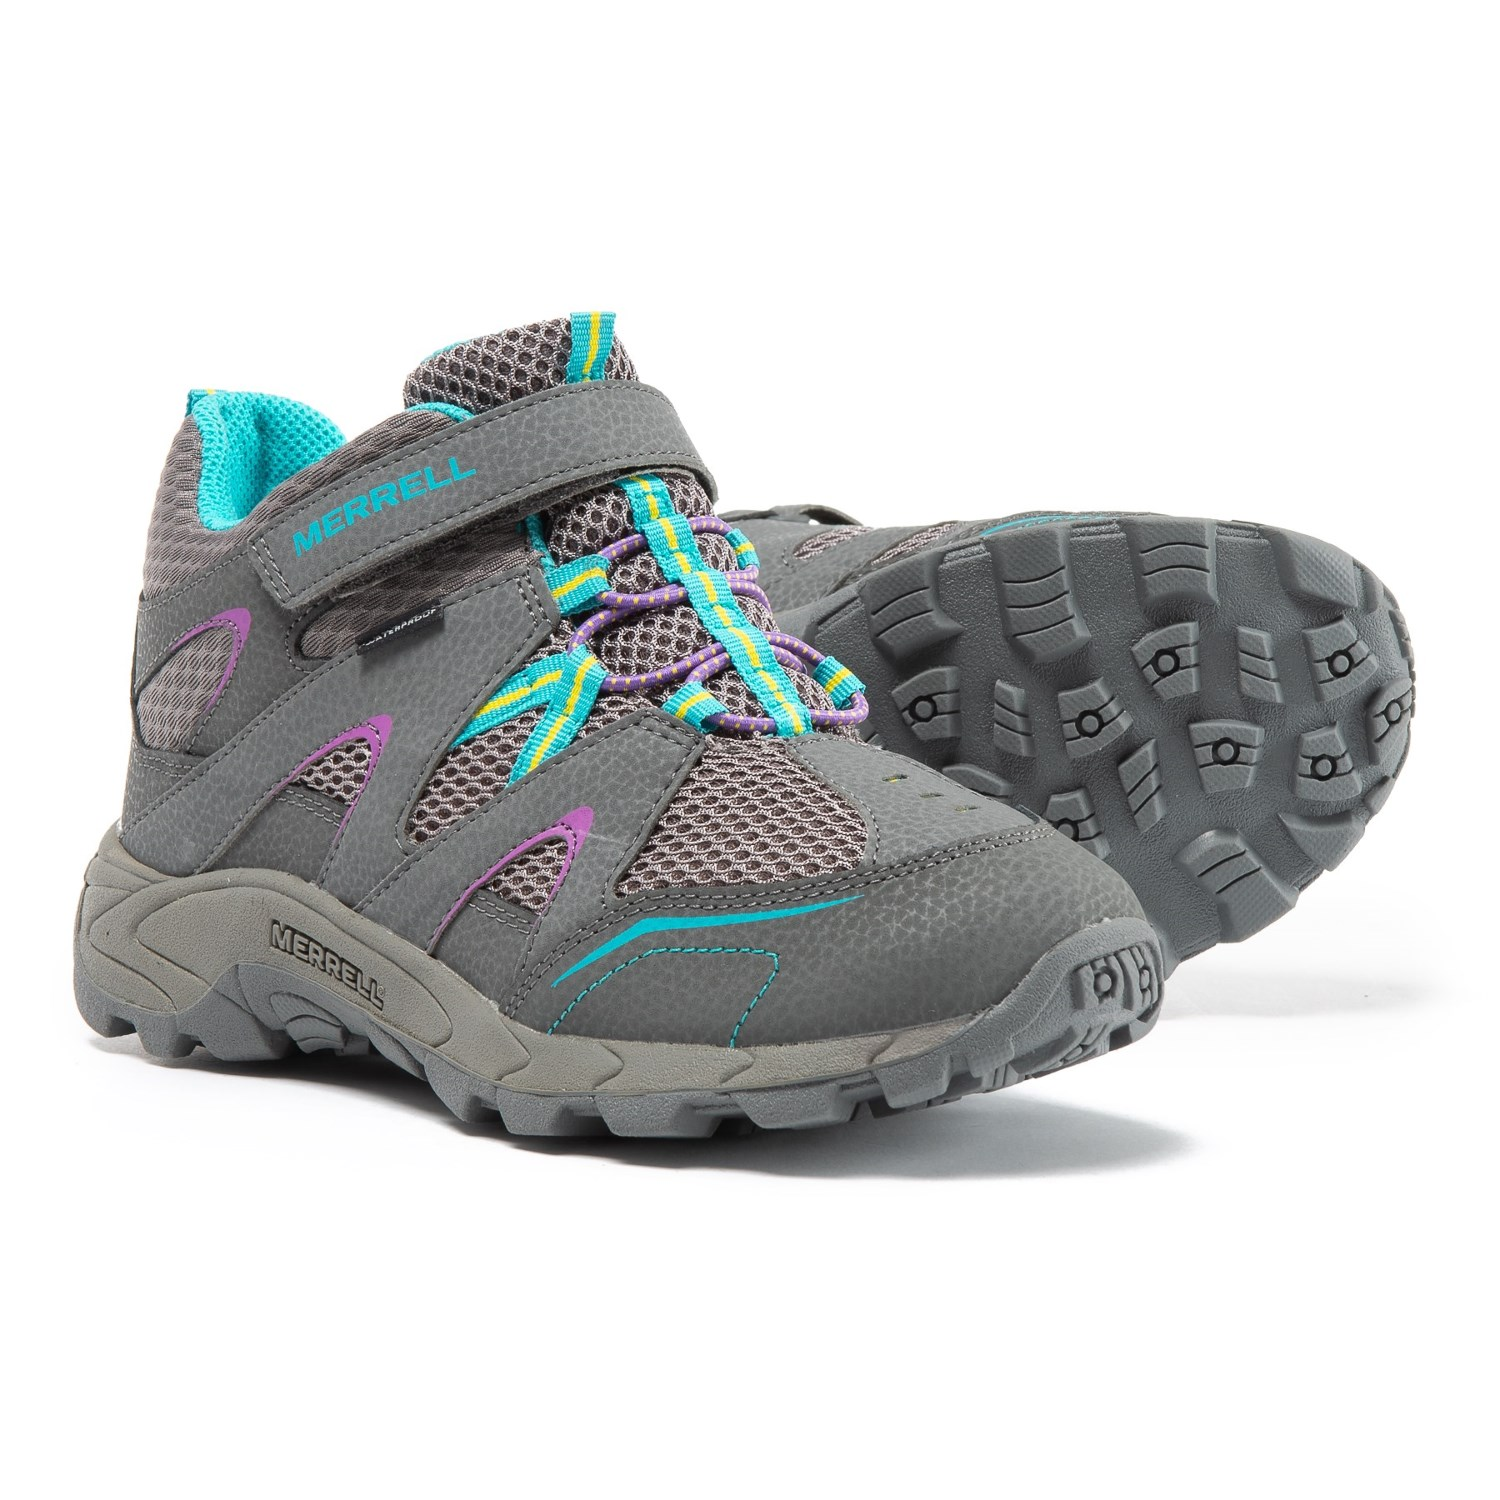 92a0f3c960 Merrell Hilltop Mid Quick-Close Hiking Boots - Waterproof (For Girls)